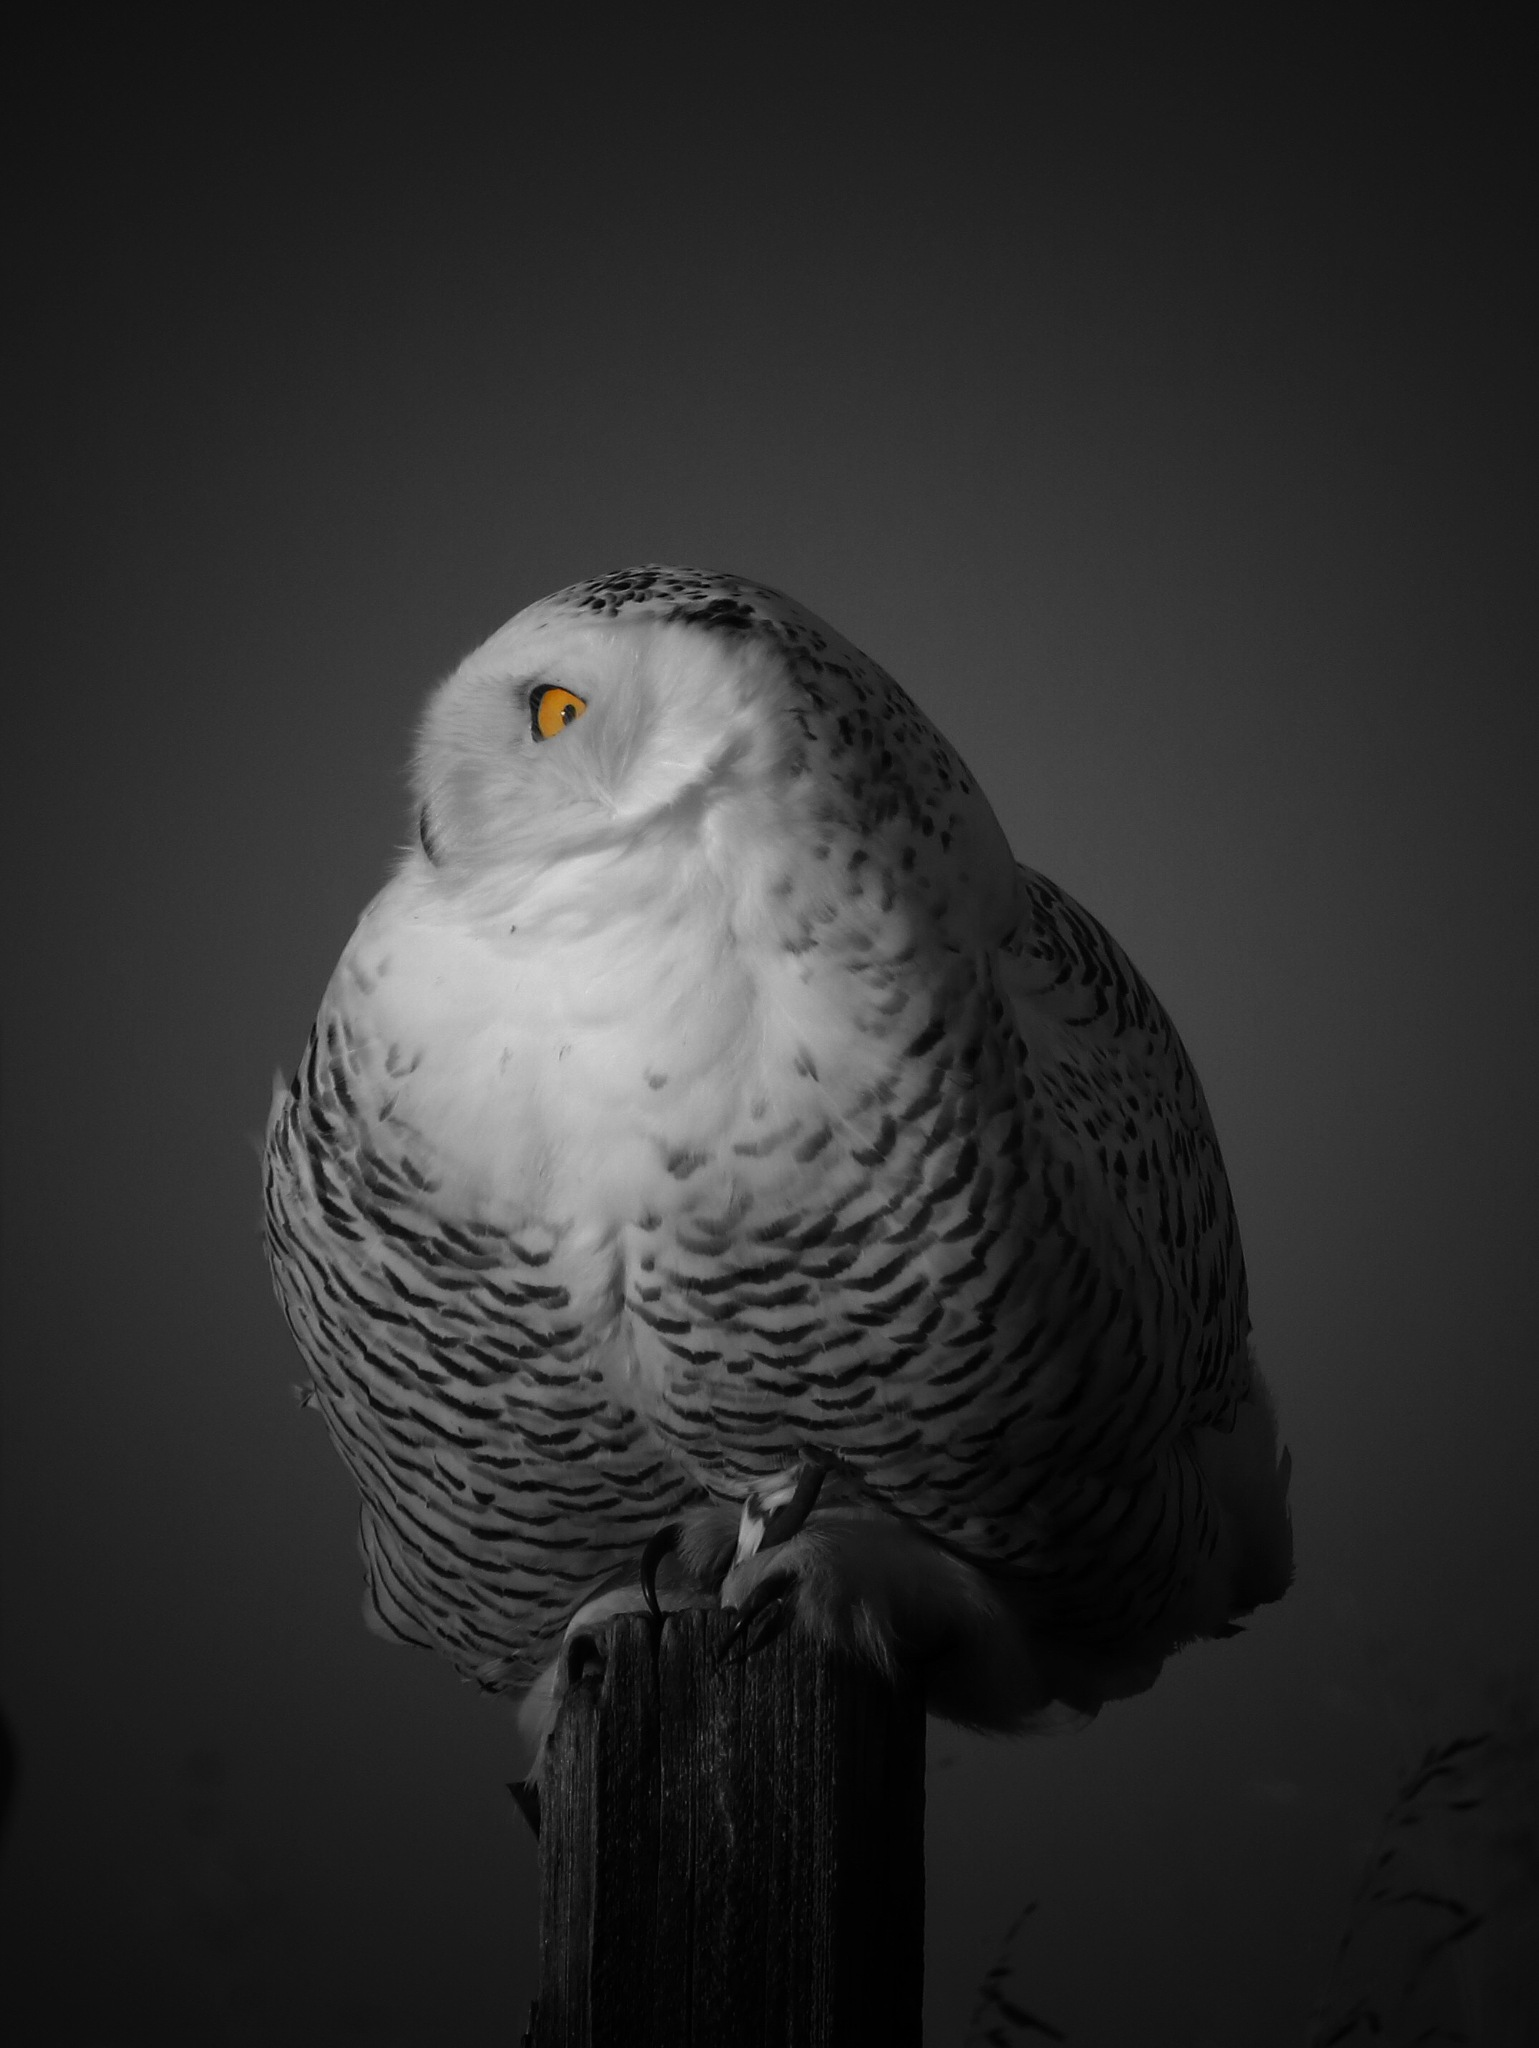 Snowy Owl in Black & White by Sha-Rae Prevost-Tooley